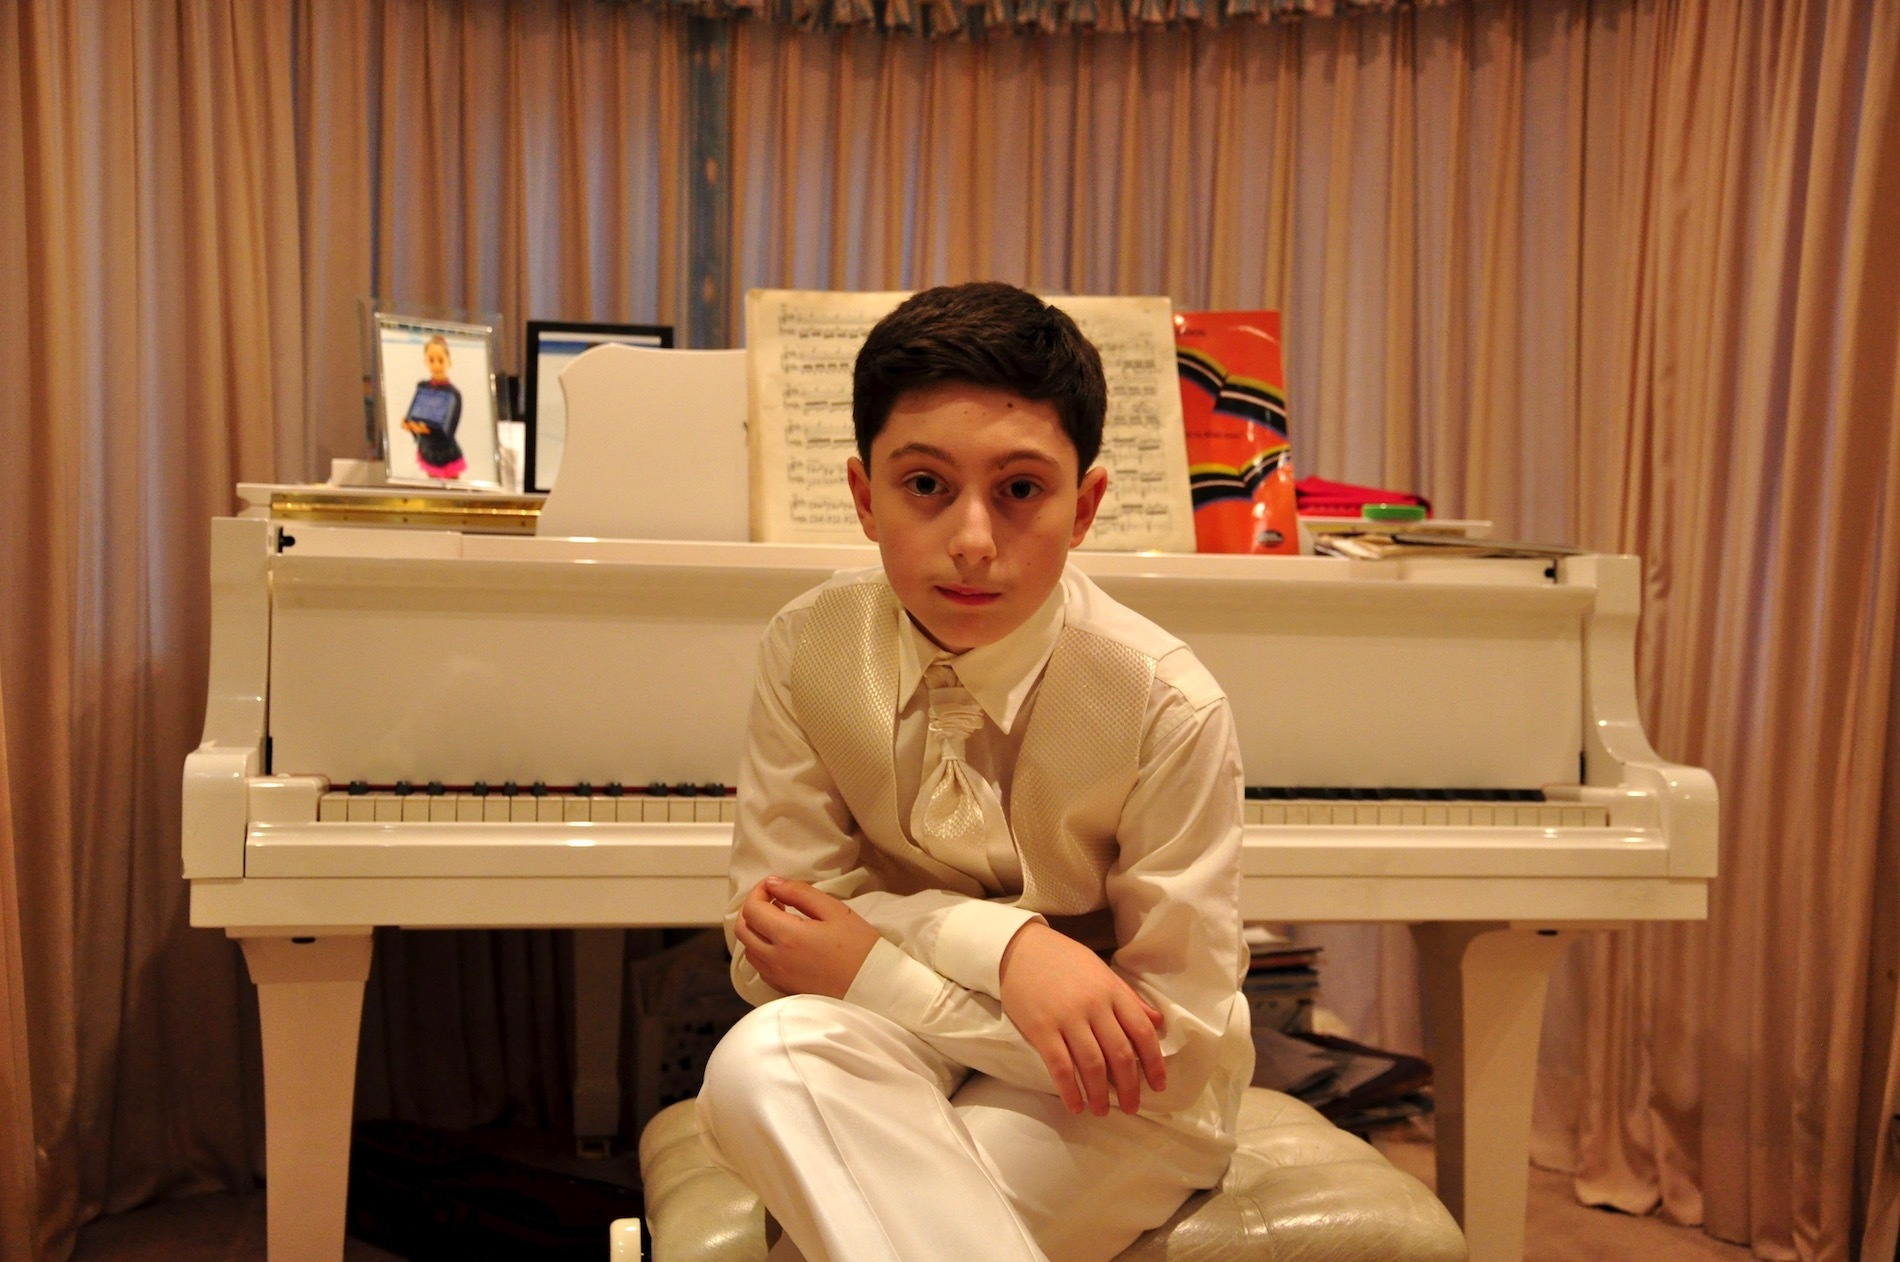 child prodigies Child prodigies have amazing gifts and talents at young ages, so why do they only rarely grow up to be adult geniuses.